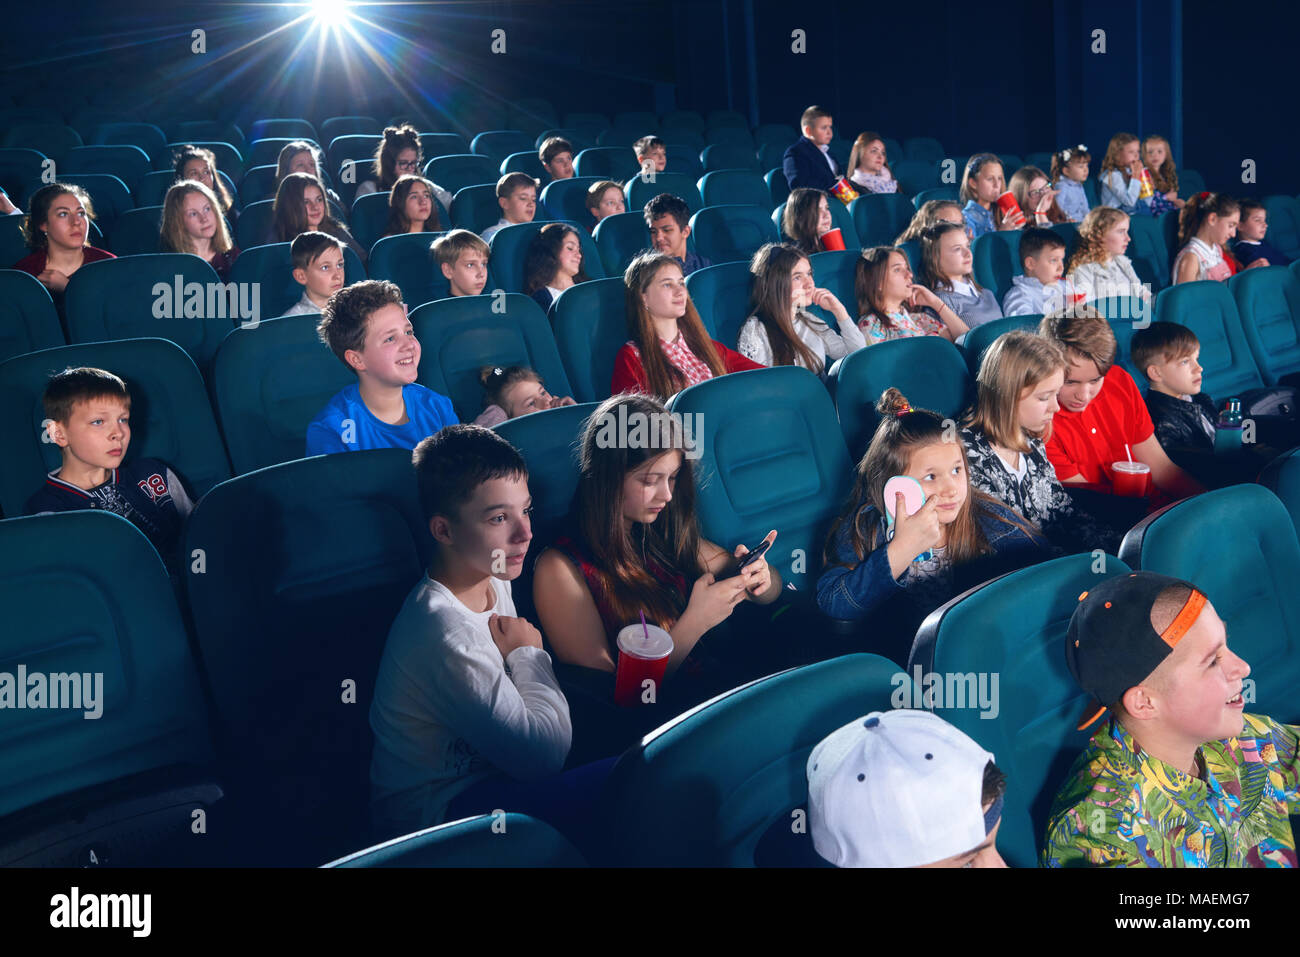 Schoolmates watching movie in the cinema. Boys and girls looking happy,emotional, funny and satisfied. Children wearing colorful clothes. Eating popcorn and drinking fizzy drinks. - Stock Image